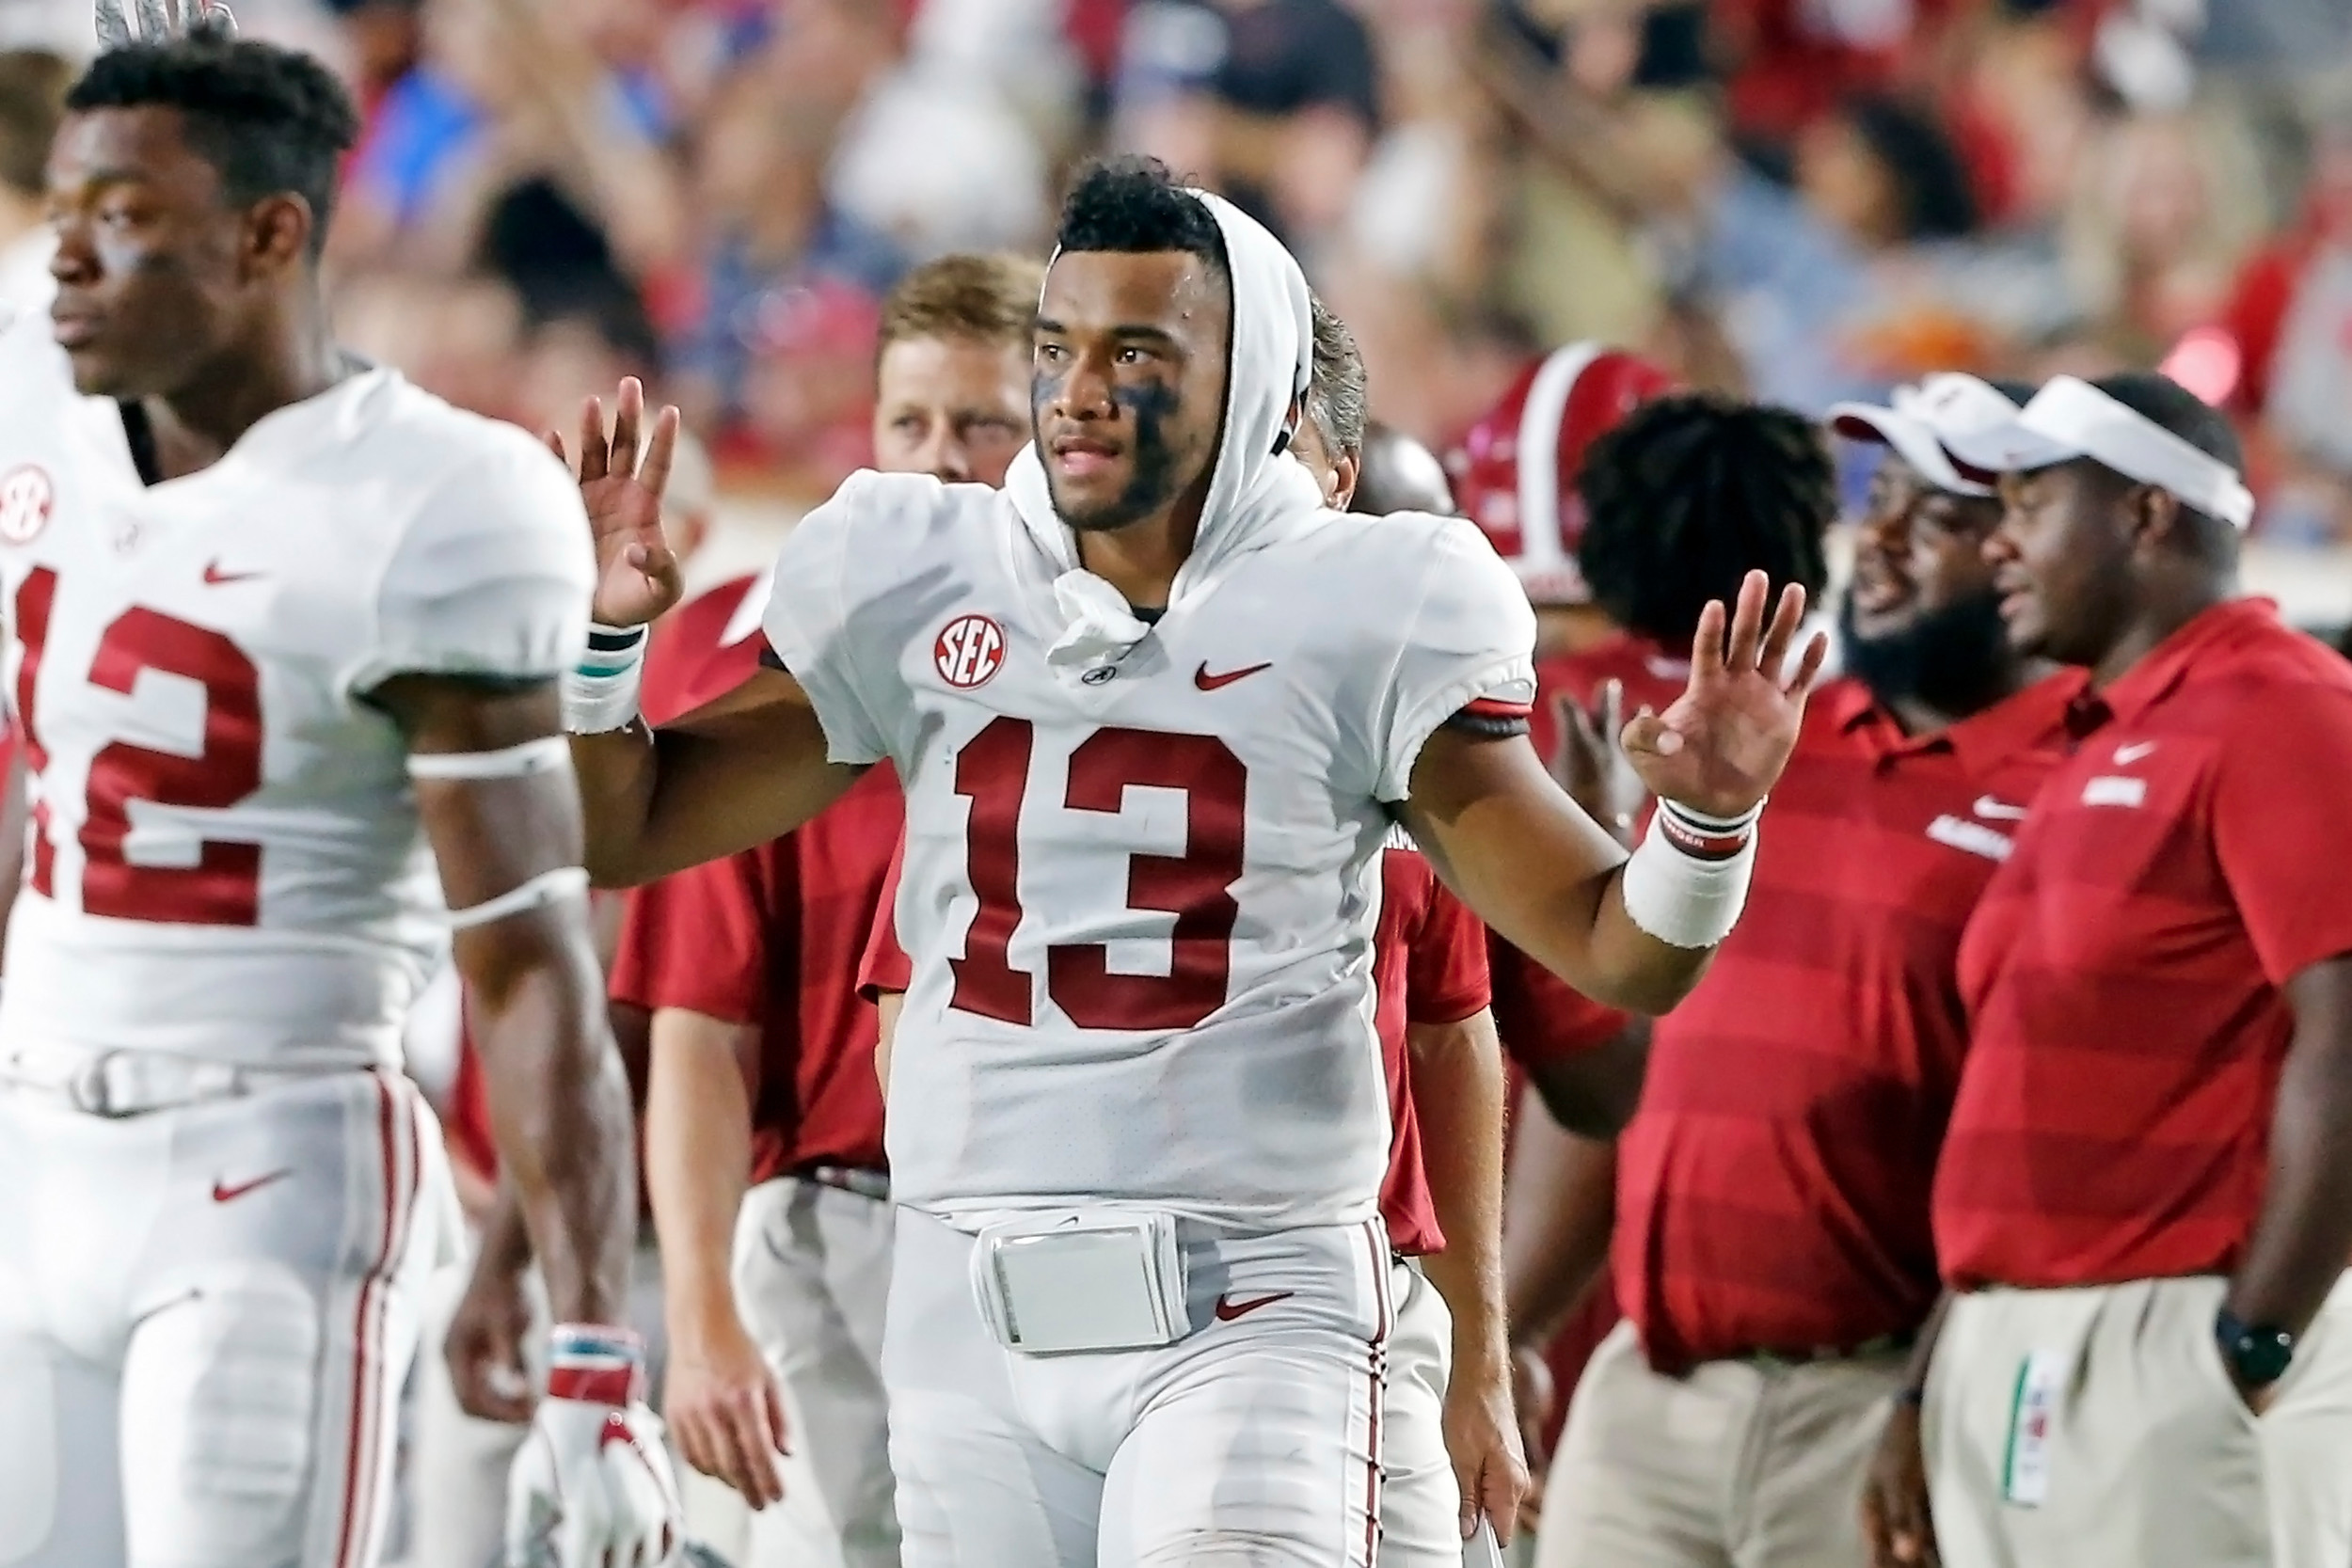 Alabama Crimson Tide quarterback Tua Tagovailoa (13) signals for the fourth quartervduring the game between the University of Alabama and Ole Miss at Vaught-Hemingway Stadium. Jason Clark / Daily Mountain Eagle